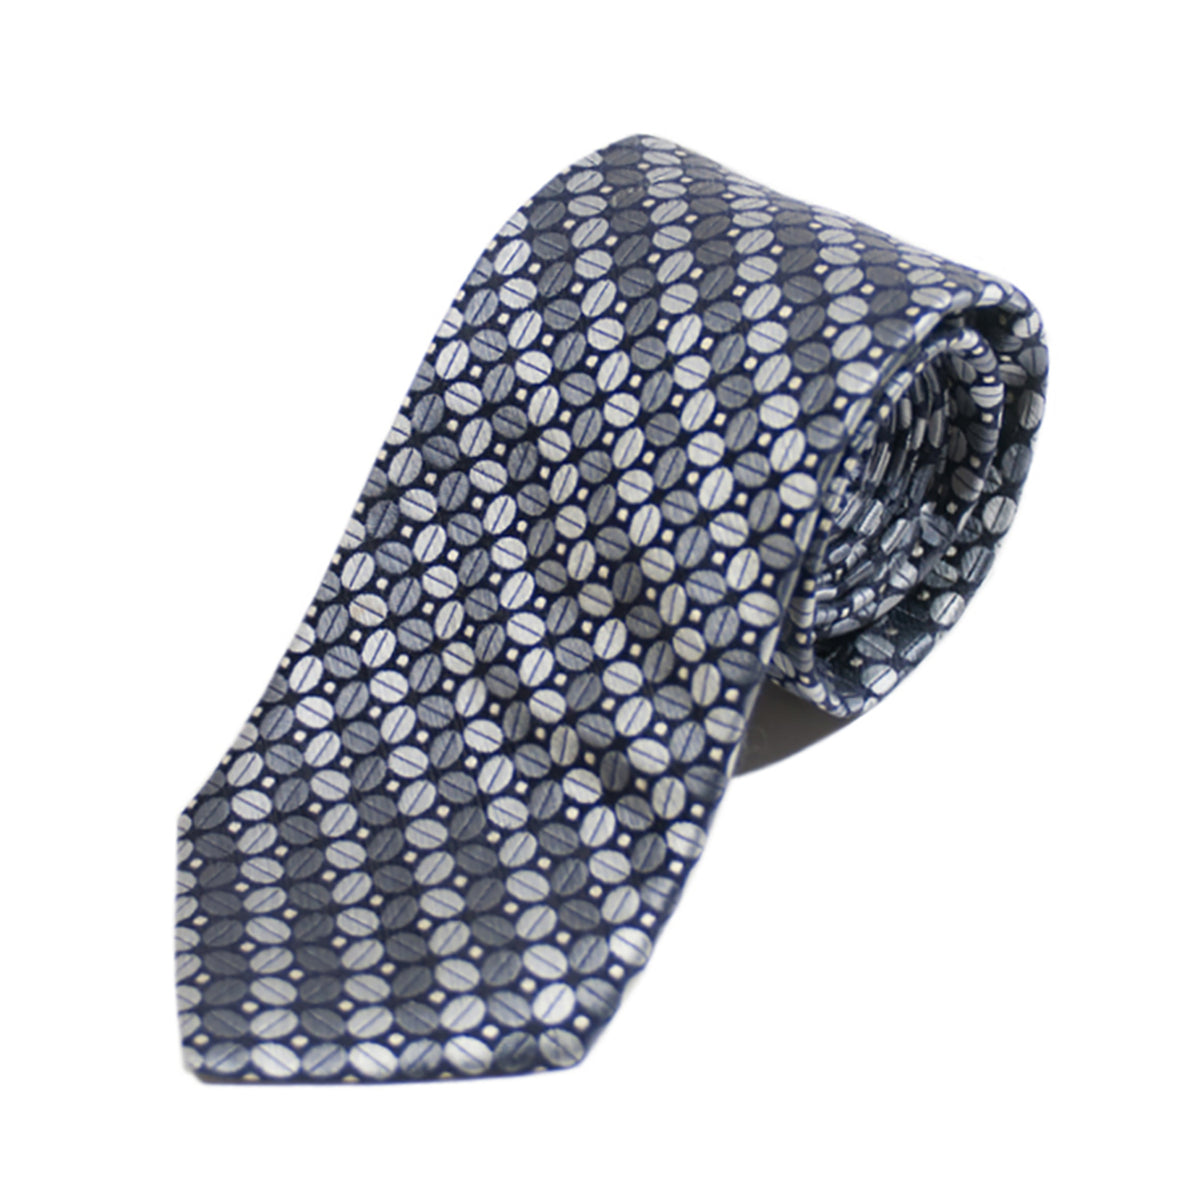 Ted Baker Grey Patterned Tie Hand Tailored in the USA. Luxmrkt.com menswear consignment Edmonton